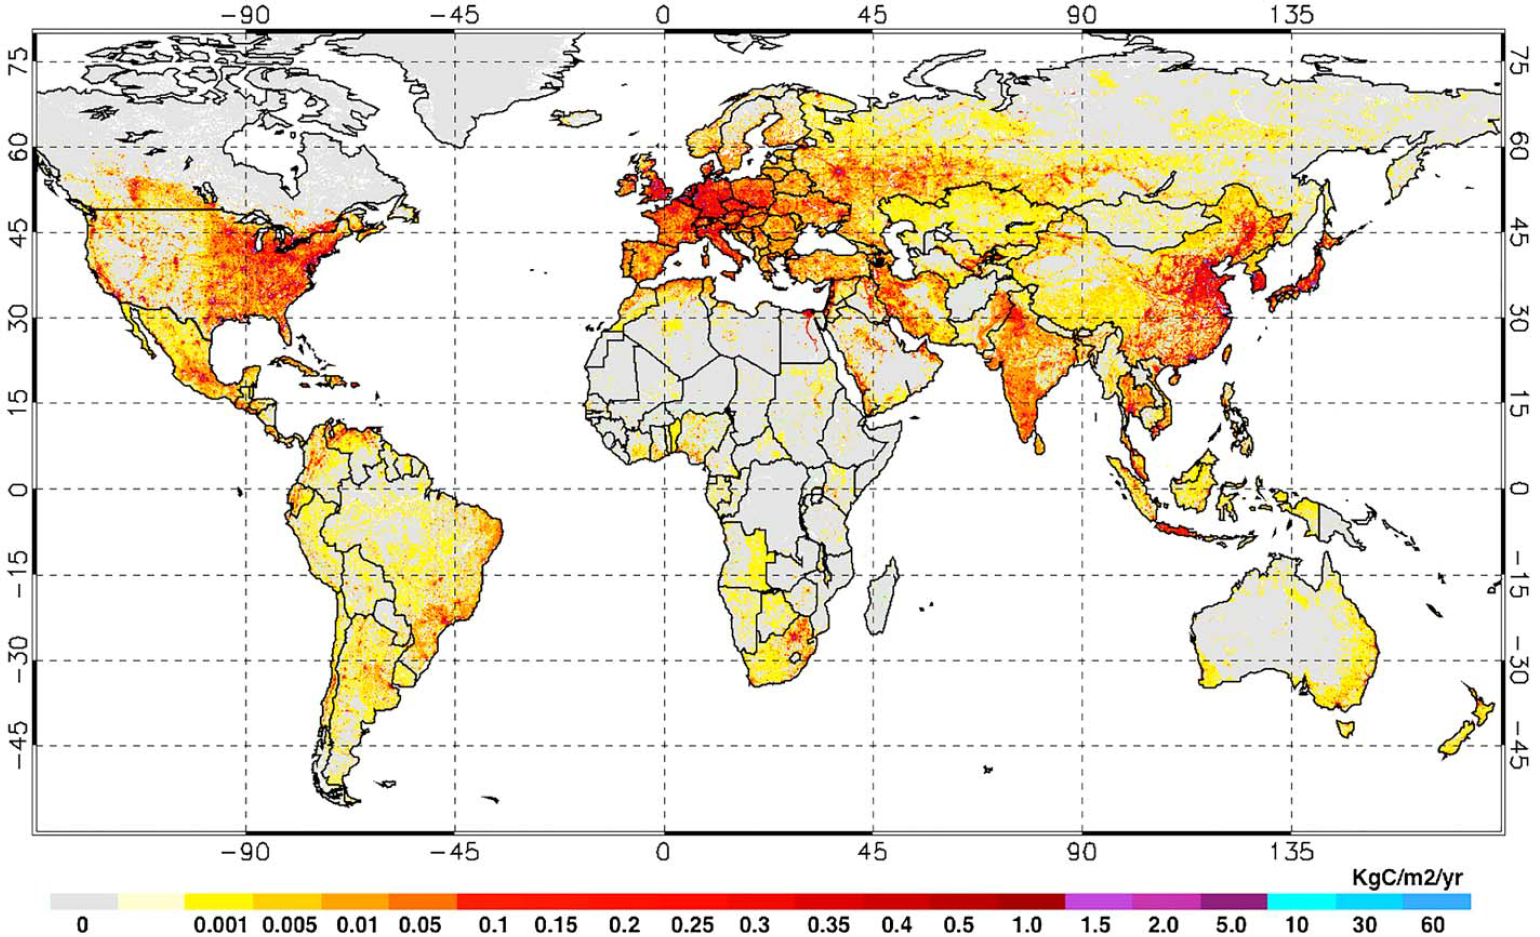 co2_map_asefi-najafabady_etal